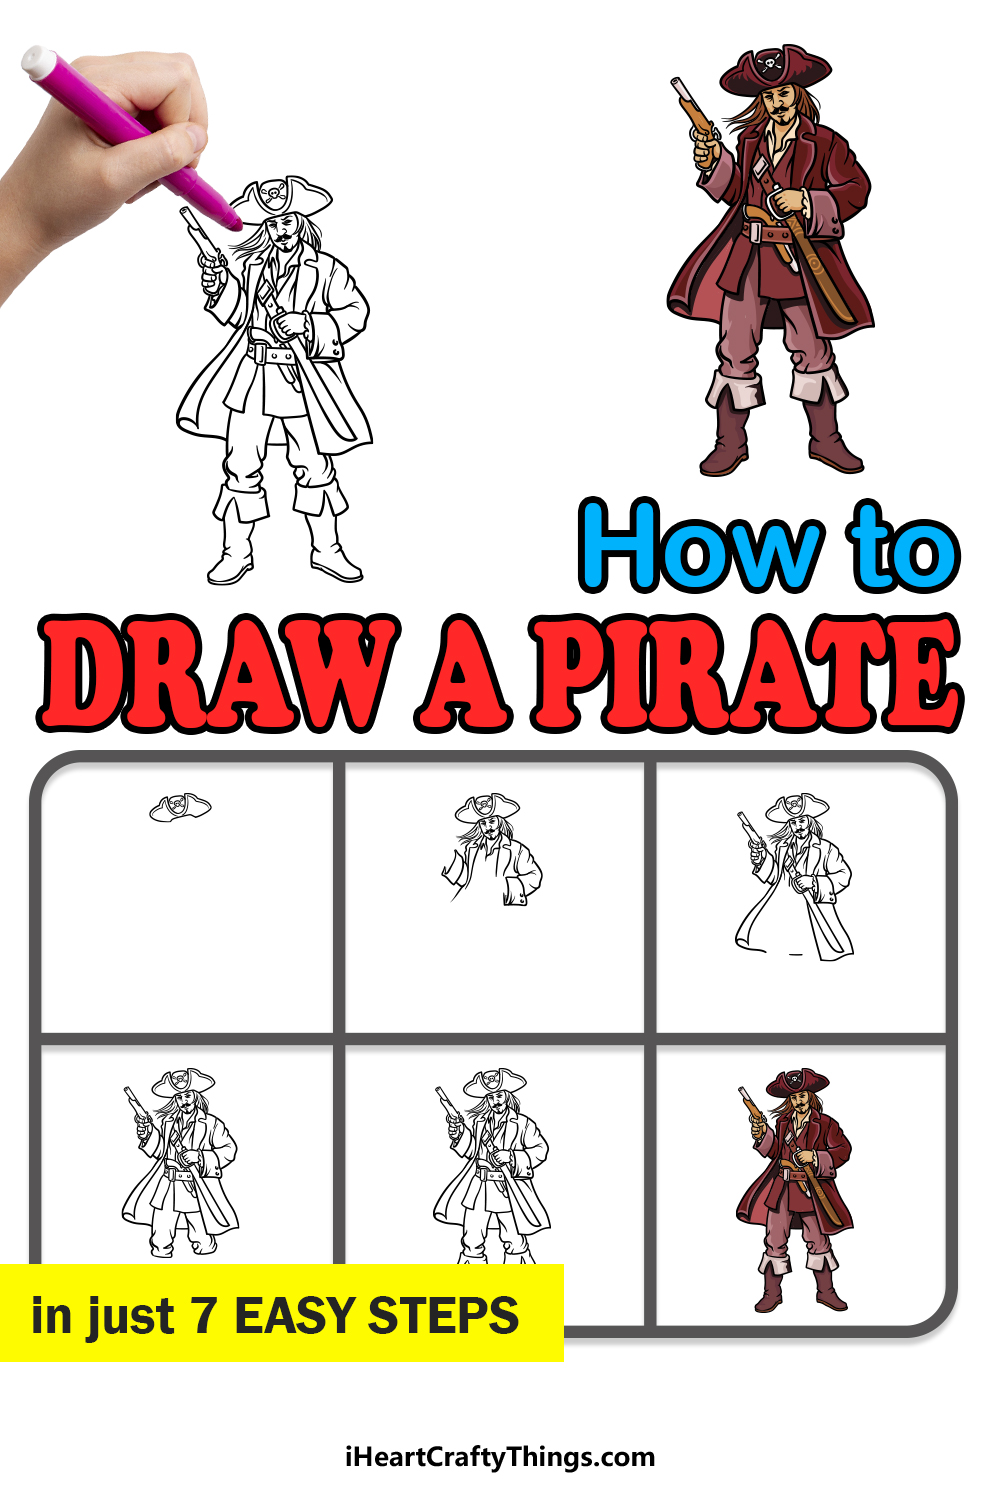 how to draw a pirate in 7 easy steps